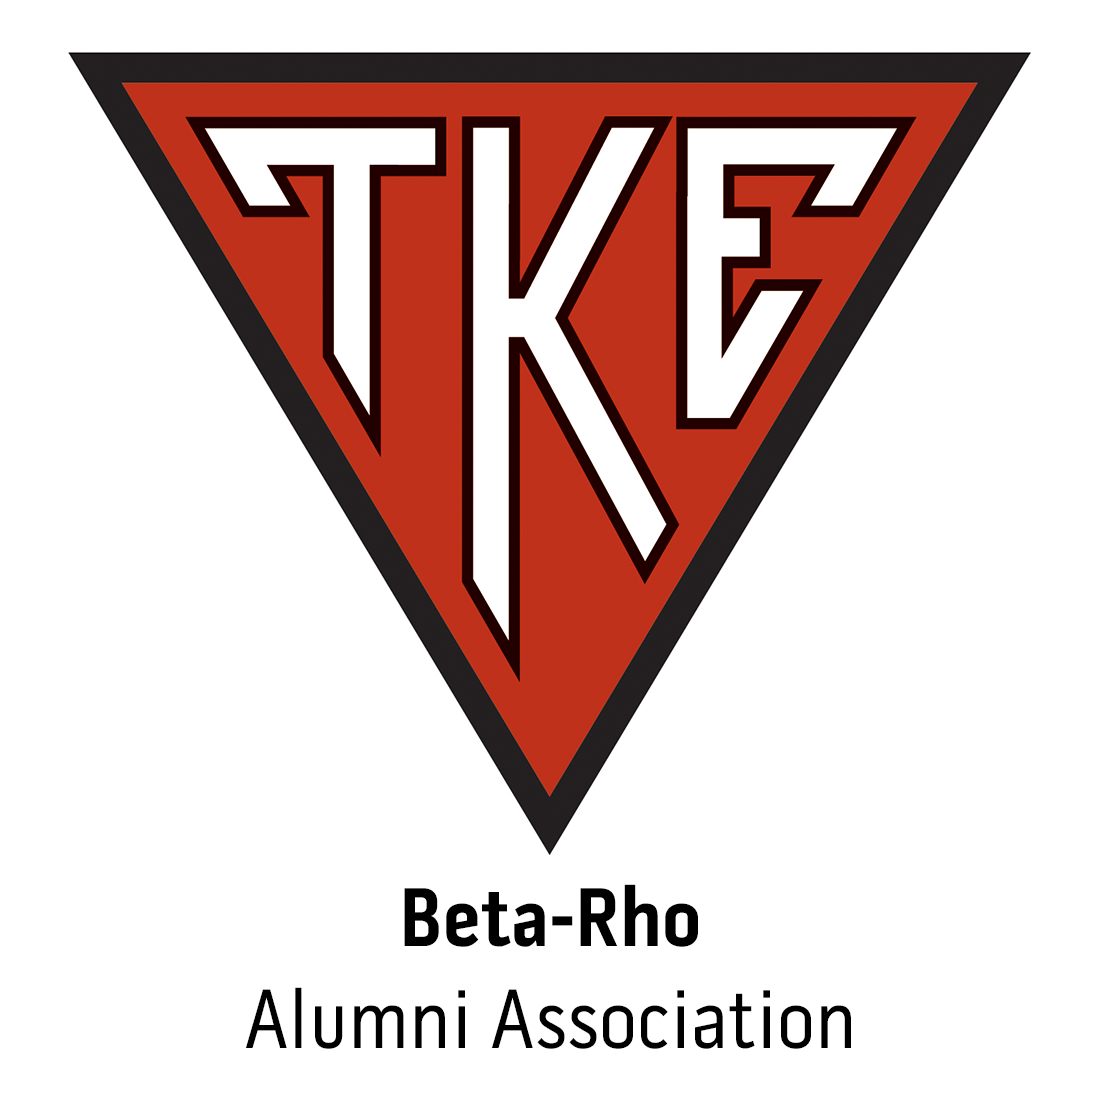 Beta-Rho Alumni Association for University of Akron